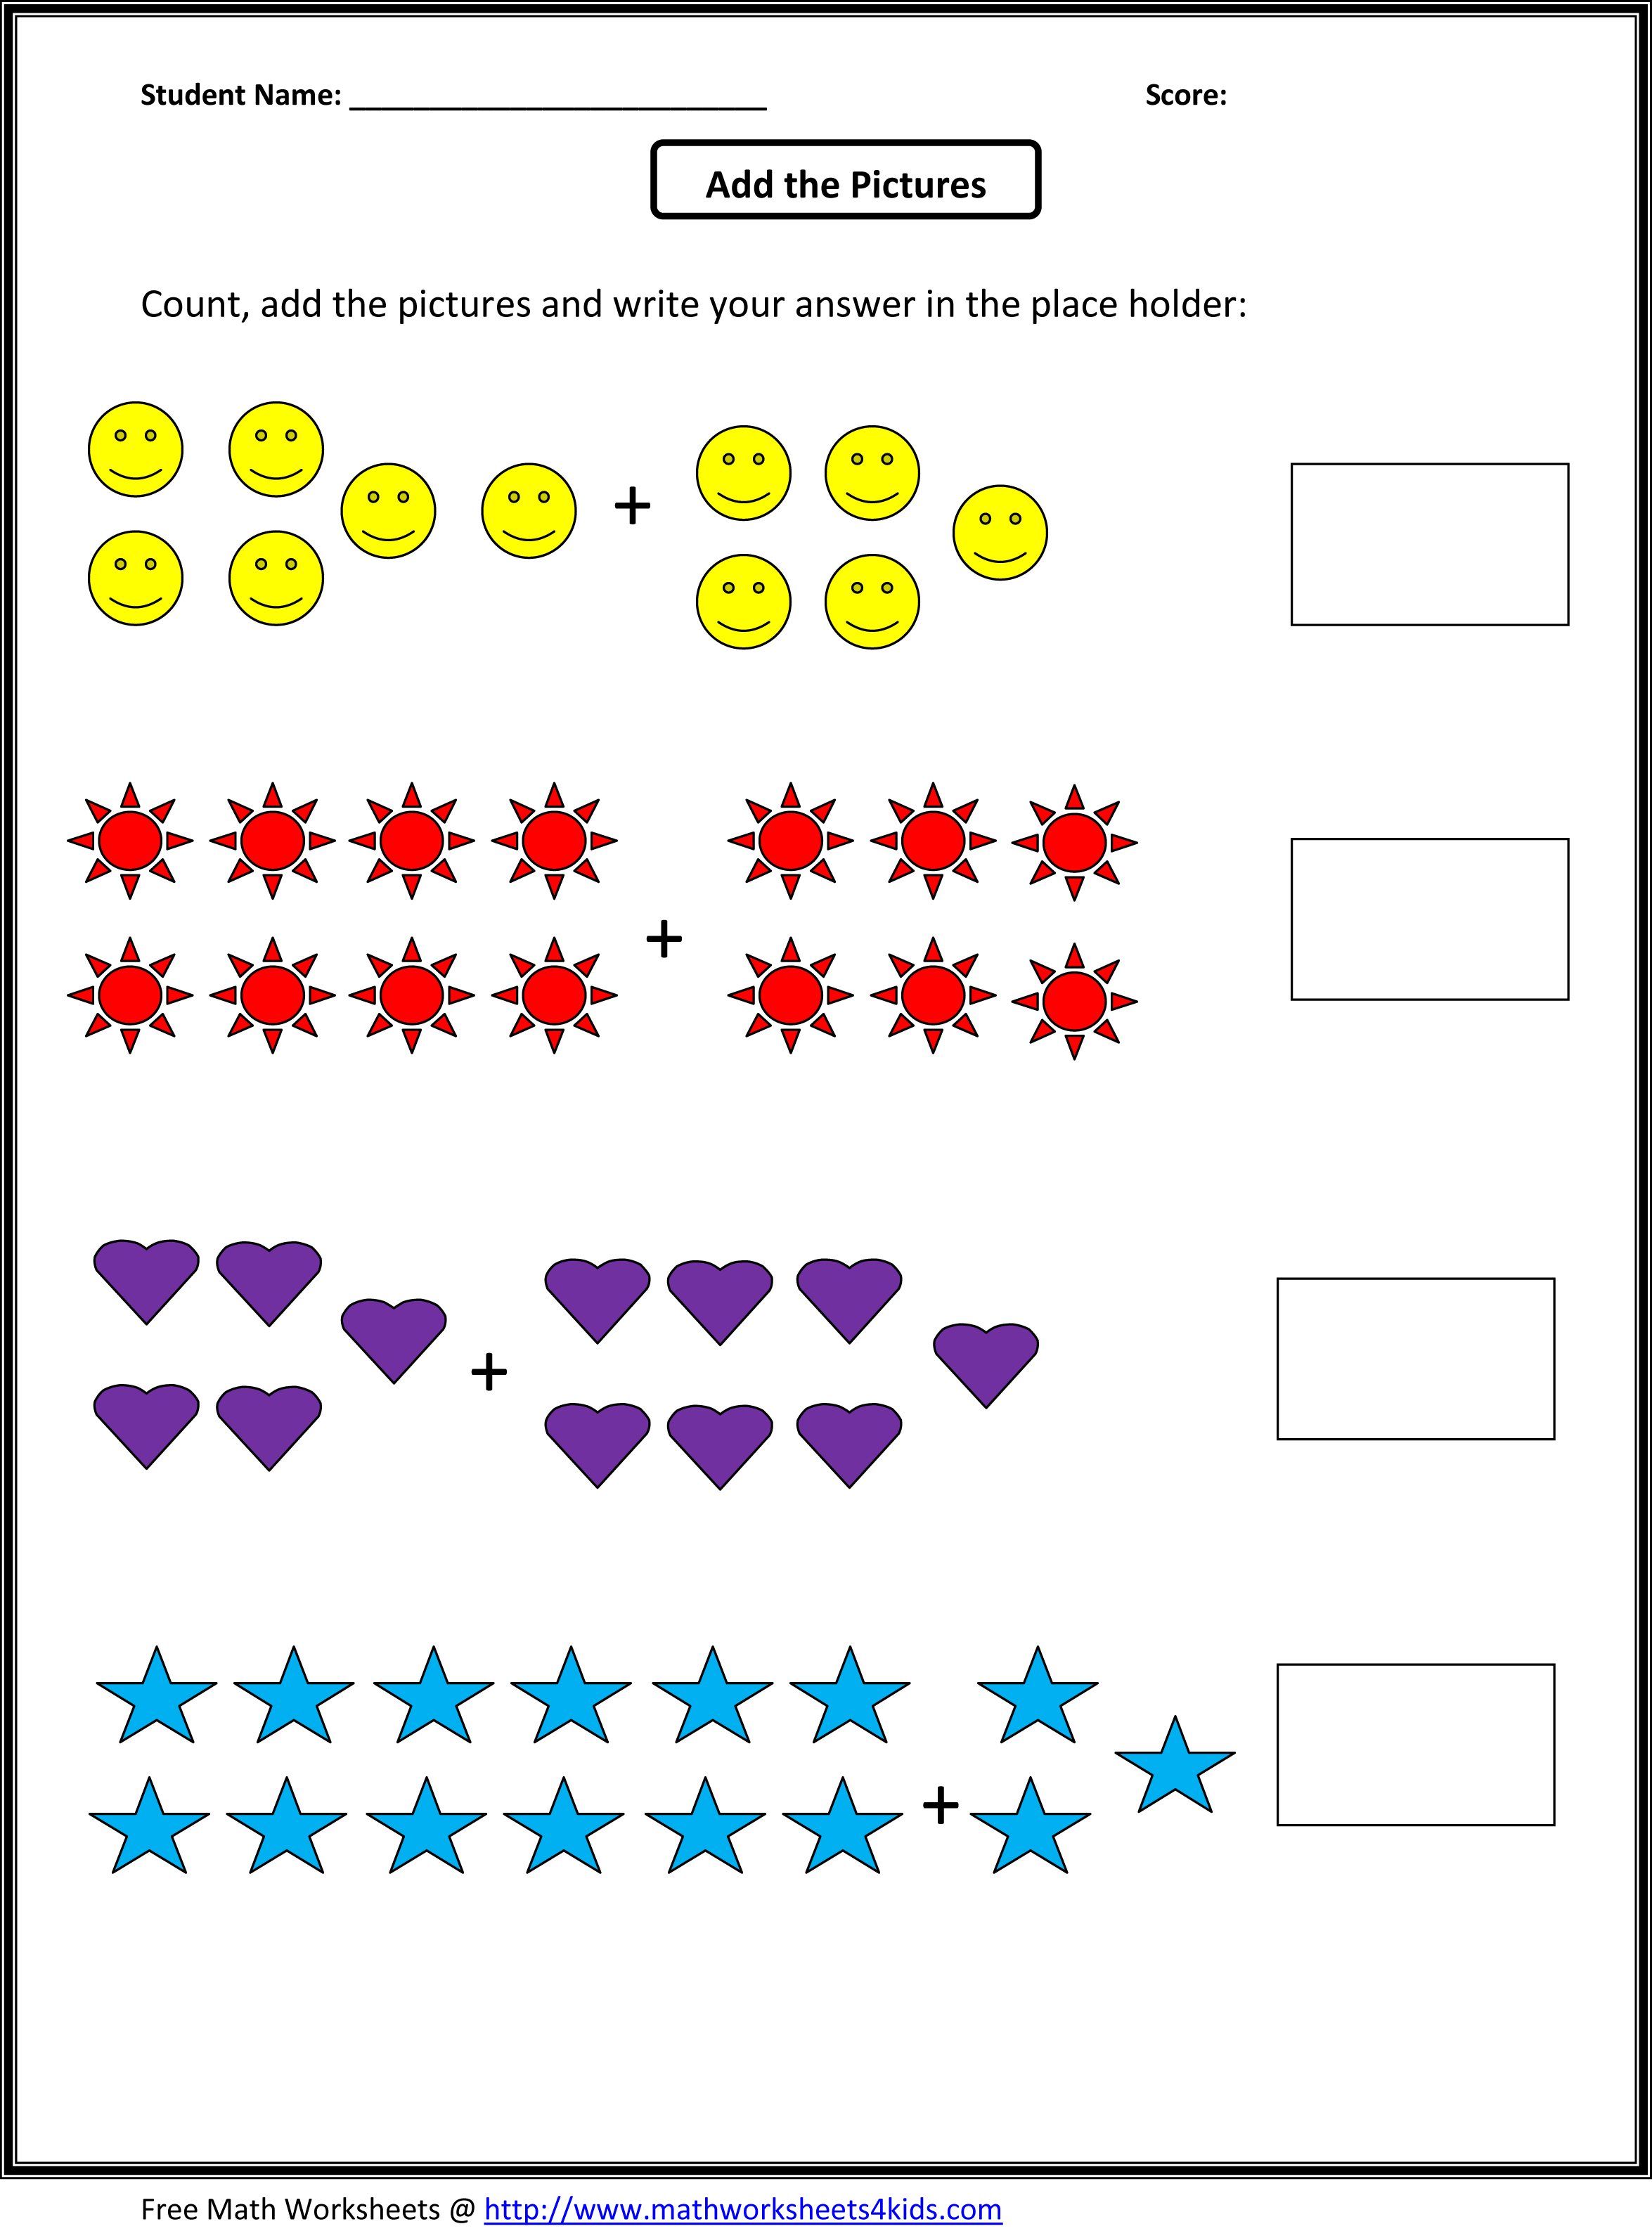 Weirdmailus  Sweet Grade  Maths Worksheet  Reocurent With Lovable Math Worksheets For St Grade Free  Reocurent With Awesome Ereading Worksheets Context Clues Also Volume Cylinder Worksheet In Addition Transitional Words And Phrases Worksheet And Free Cutting Worksheets As Well As Mole Ratios And Mole To Mole Conversions Worksheet Answers Additionally Worksheets For Grade  From Reocurentcom With Weirdmailus  Lovable Grade  Maths Worksheet  Reocurent With Awesome Math Worksheets For St Grade Free  Reocurent And Sweet Ereading Worksheets Context Clues Also Volume Cylinder Worksheet In Addition Transitional Words And Phrases Worksheet From Reocurentcom